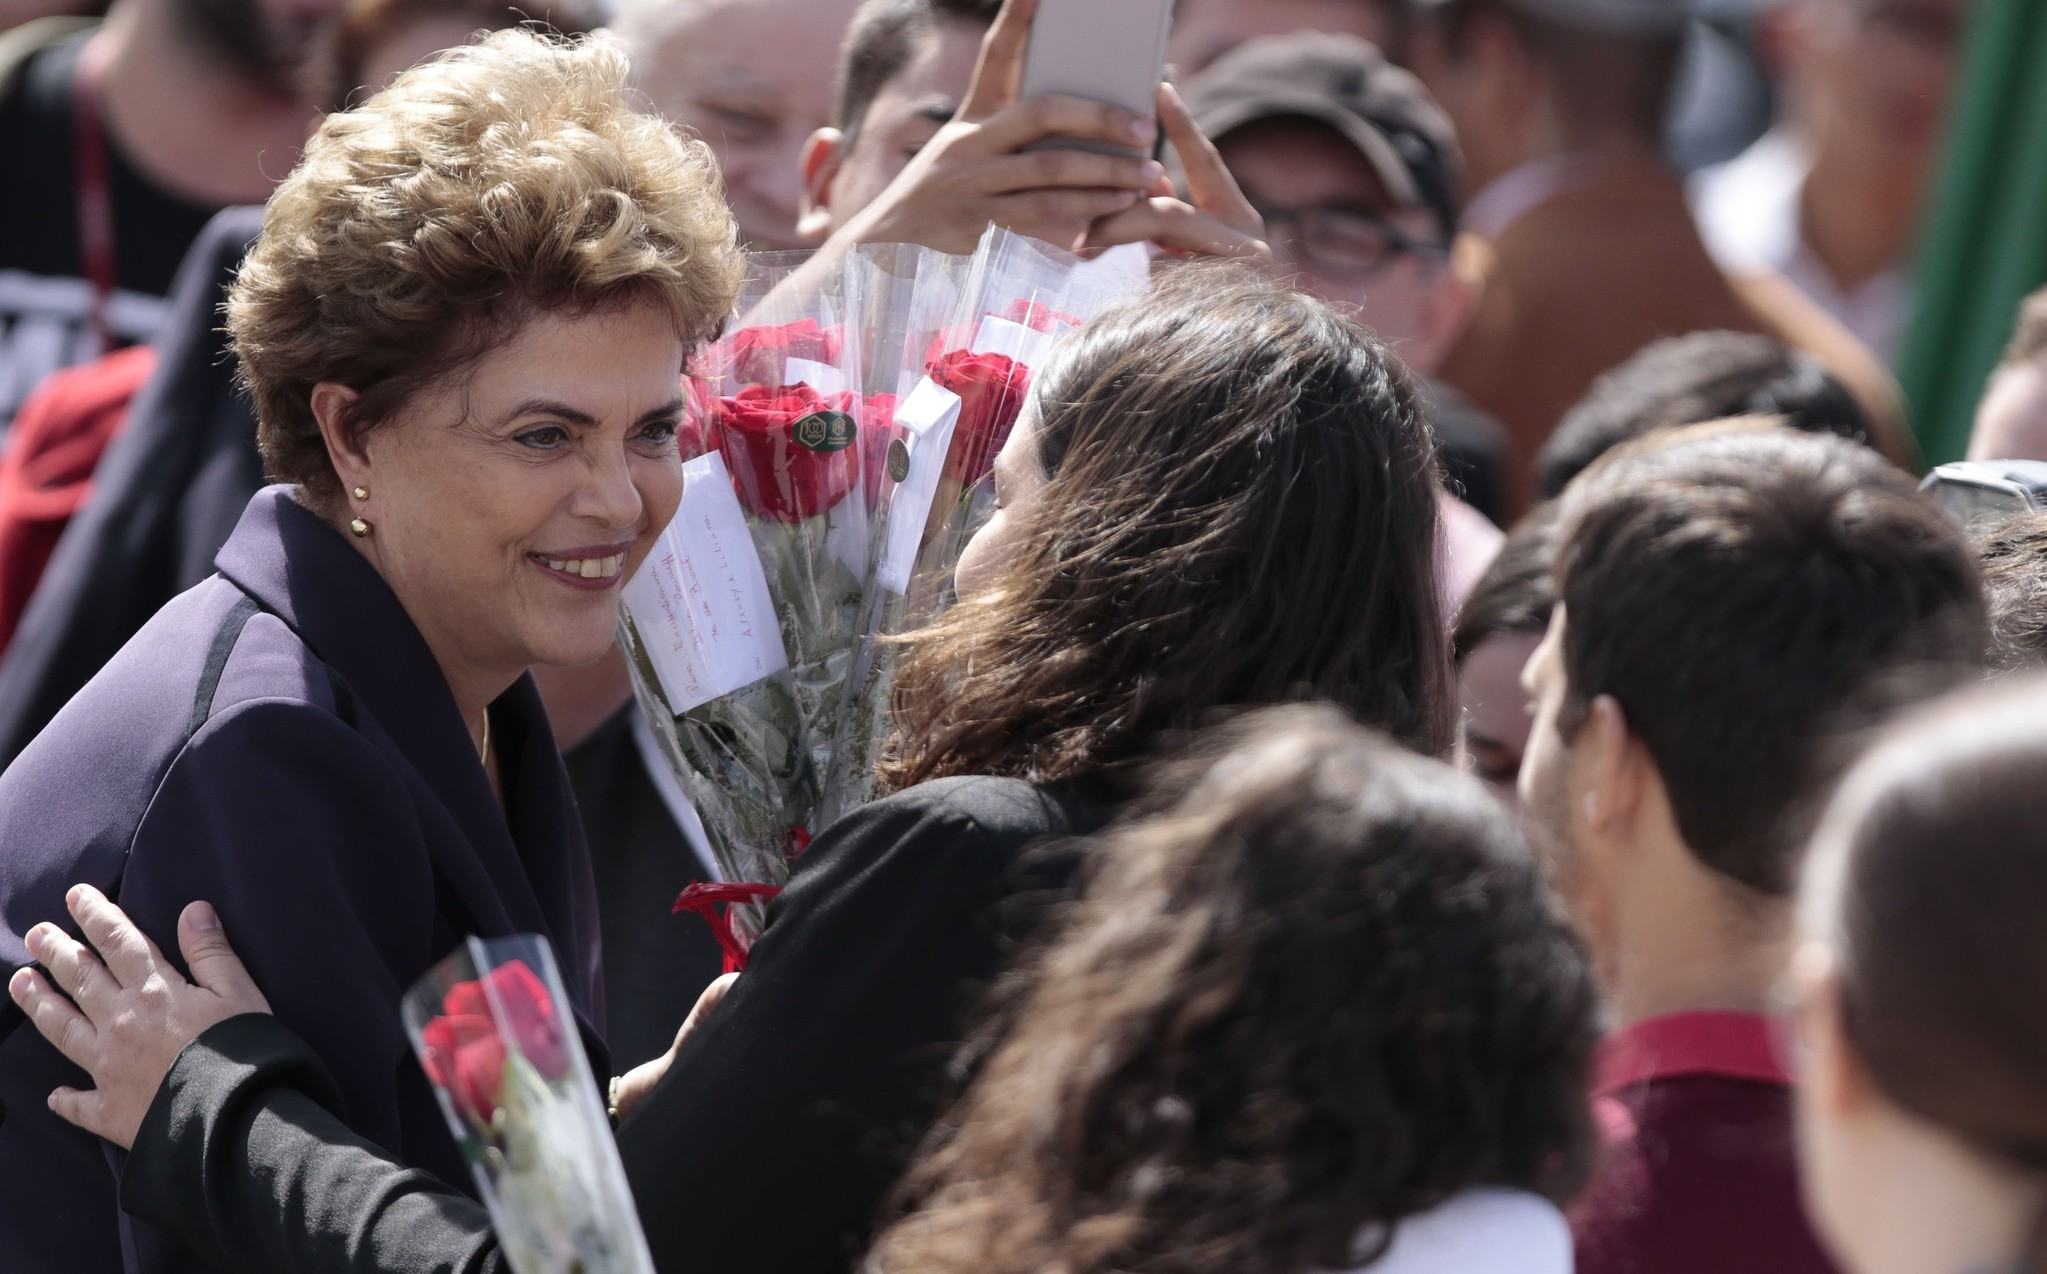 Brazilian suspended President Dilma Rousseff (L) greets workers during her visit to the construction site of Sirius in Campinas, Sao Paulo, Brazil on June 9, 2016. (AFP Photo)